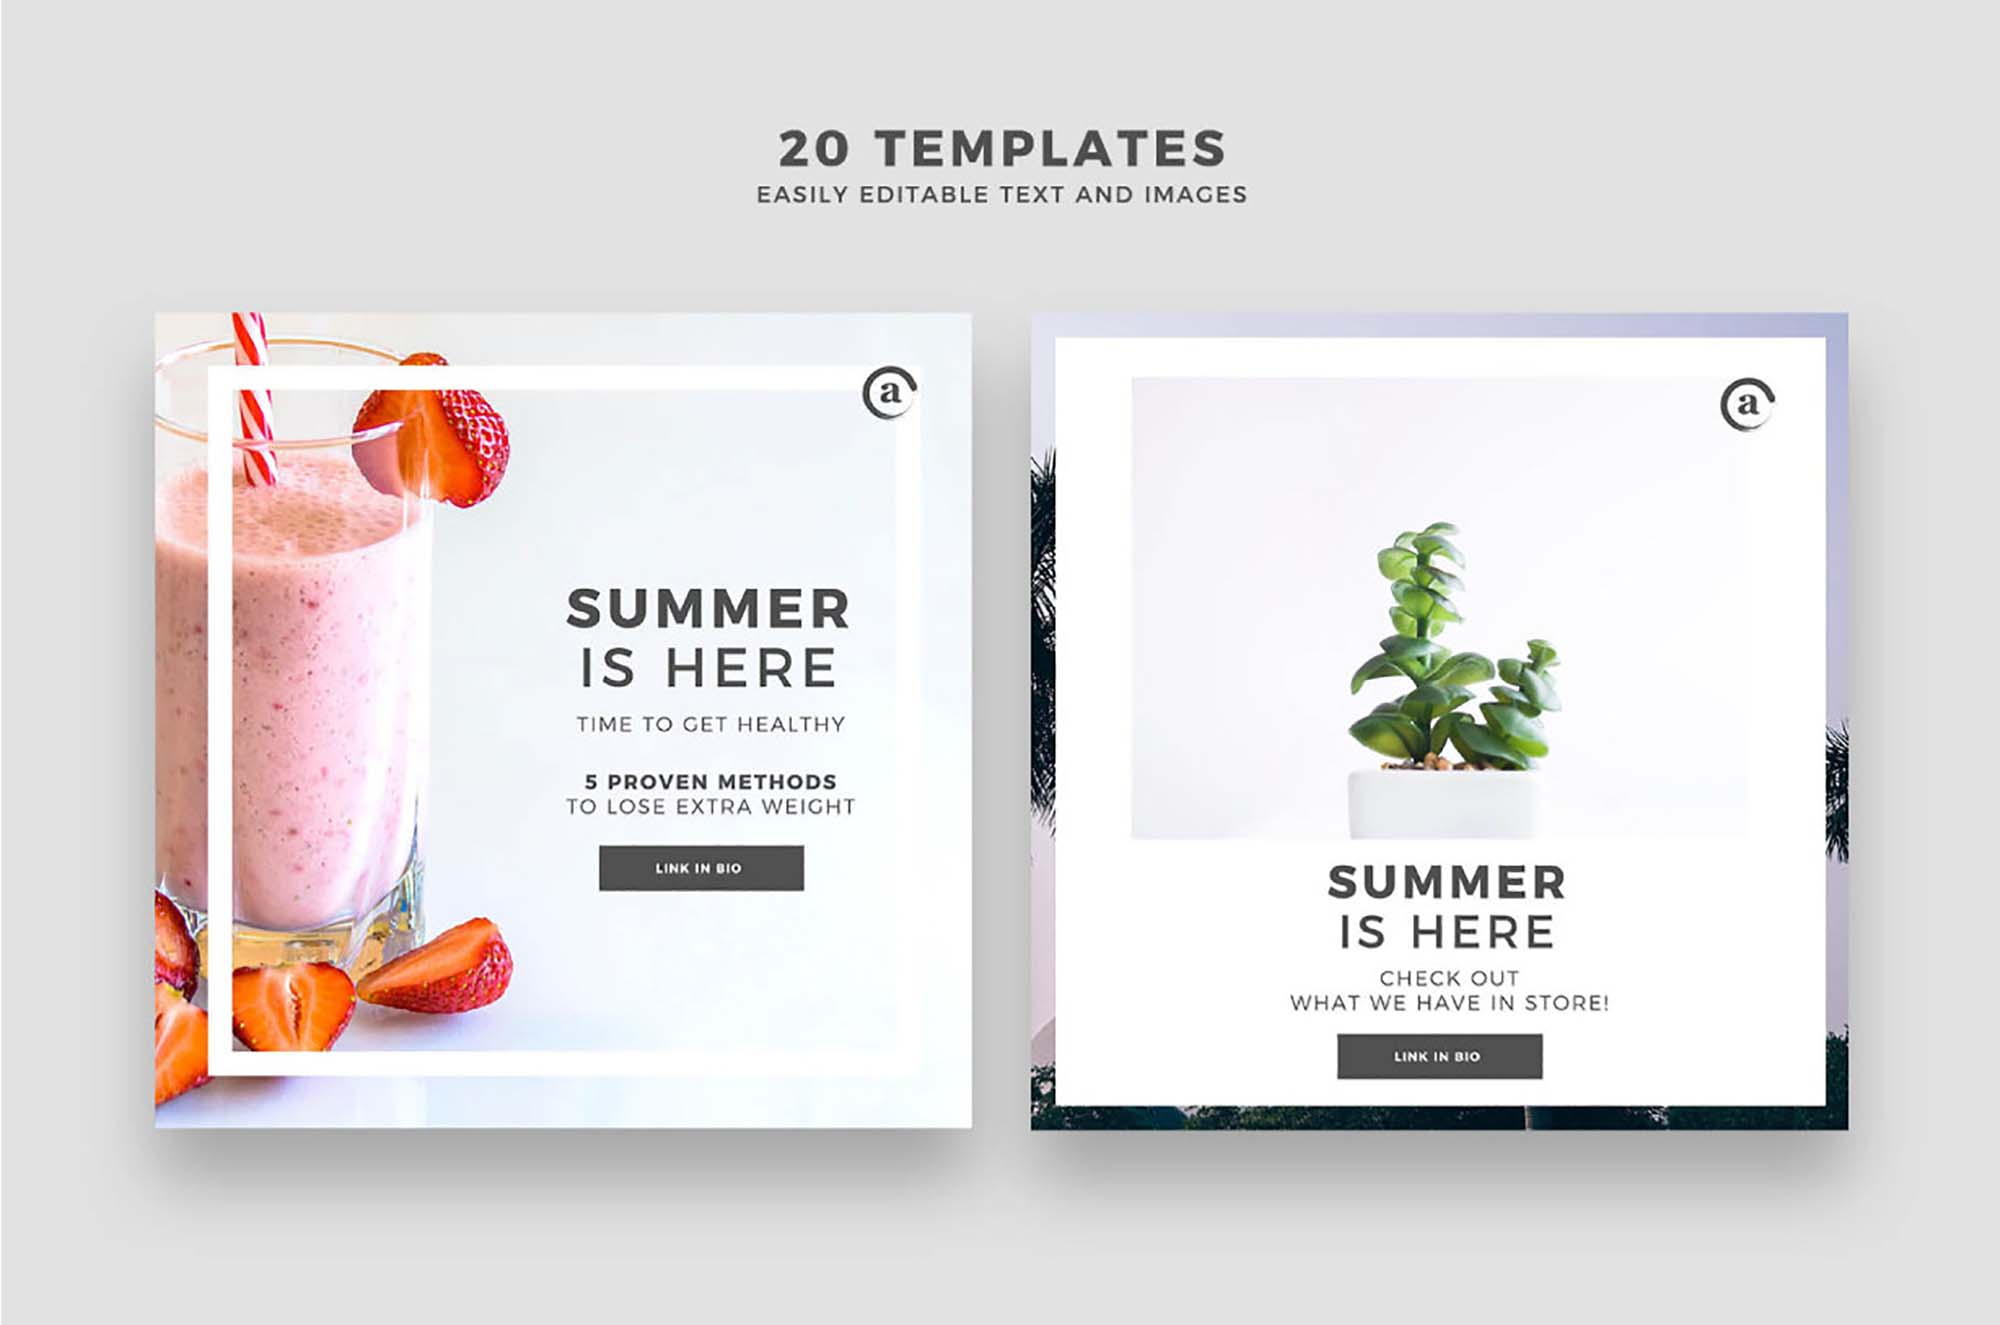 Minimis Instagram Social Media Templates 10